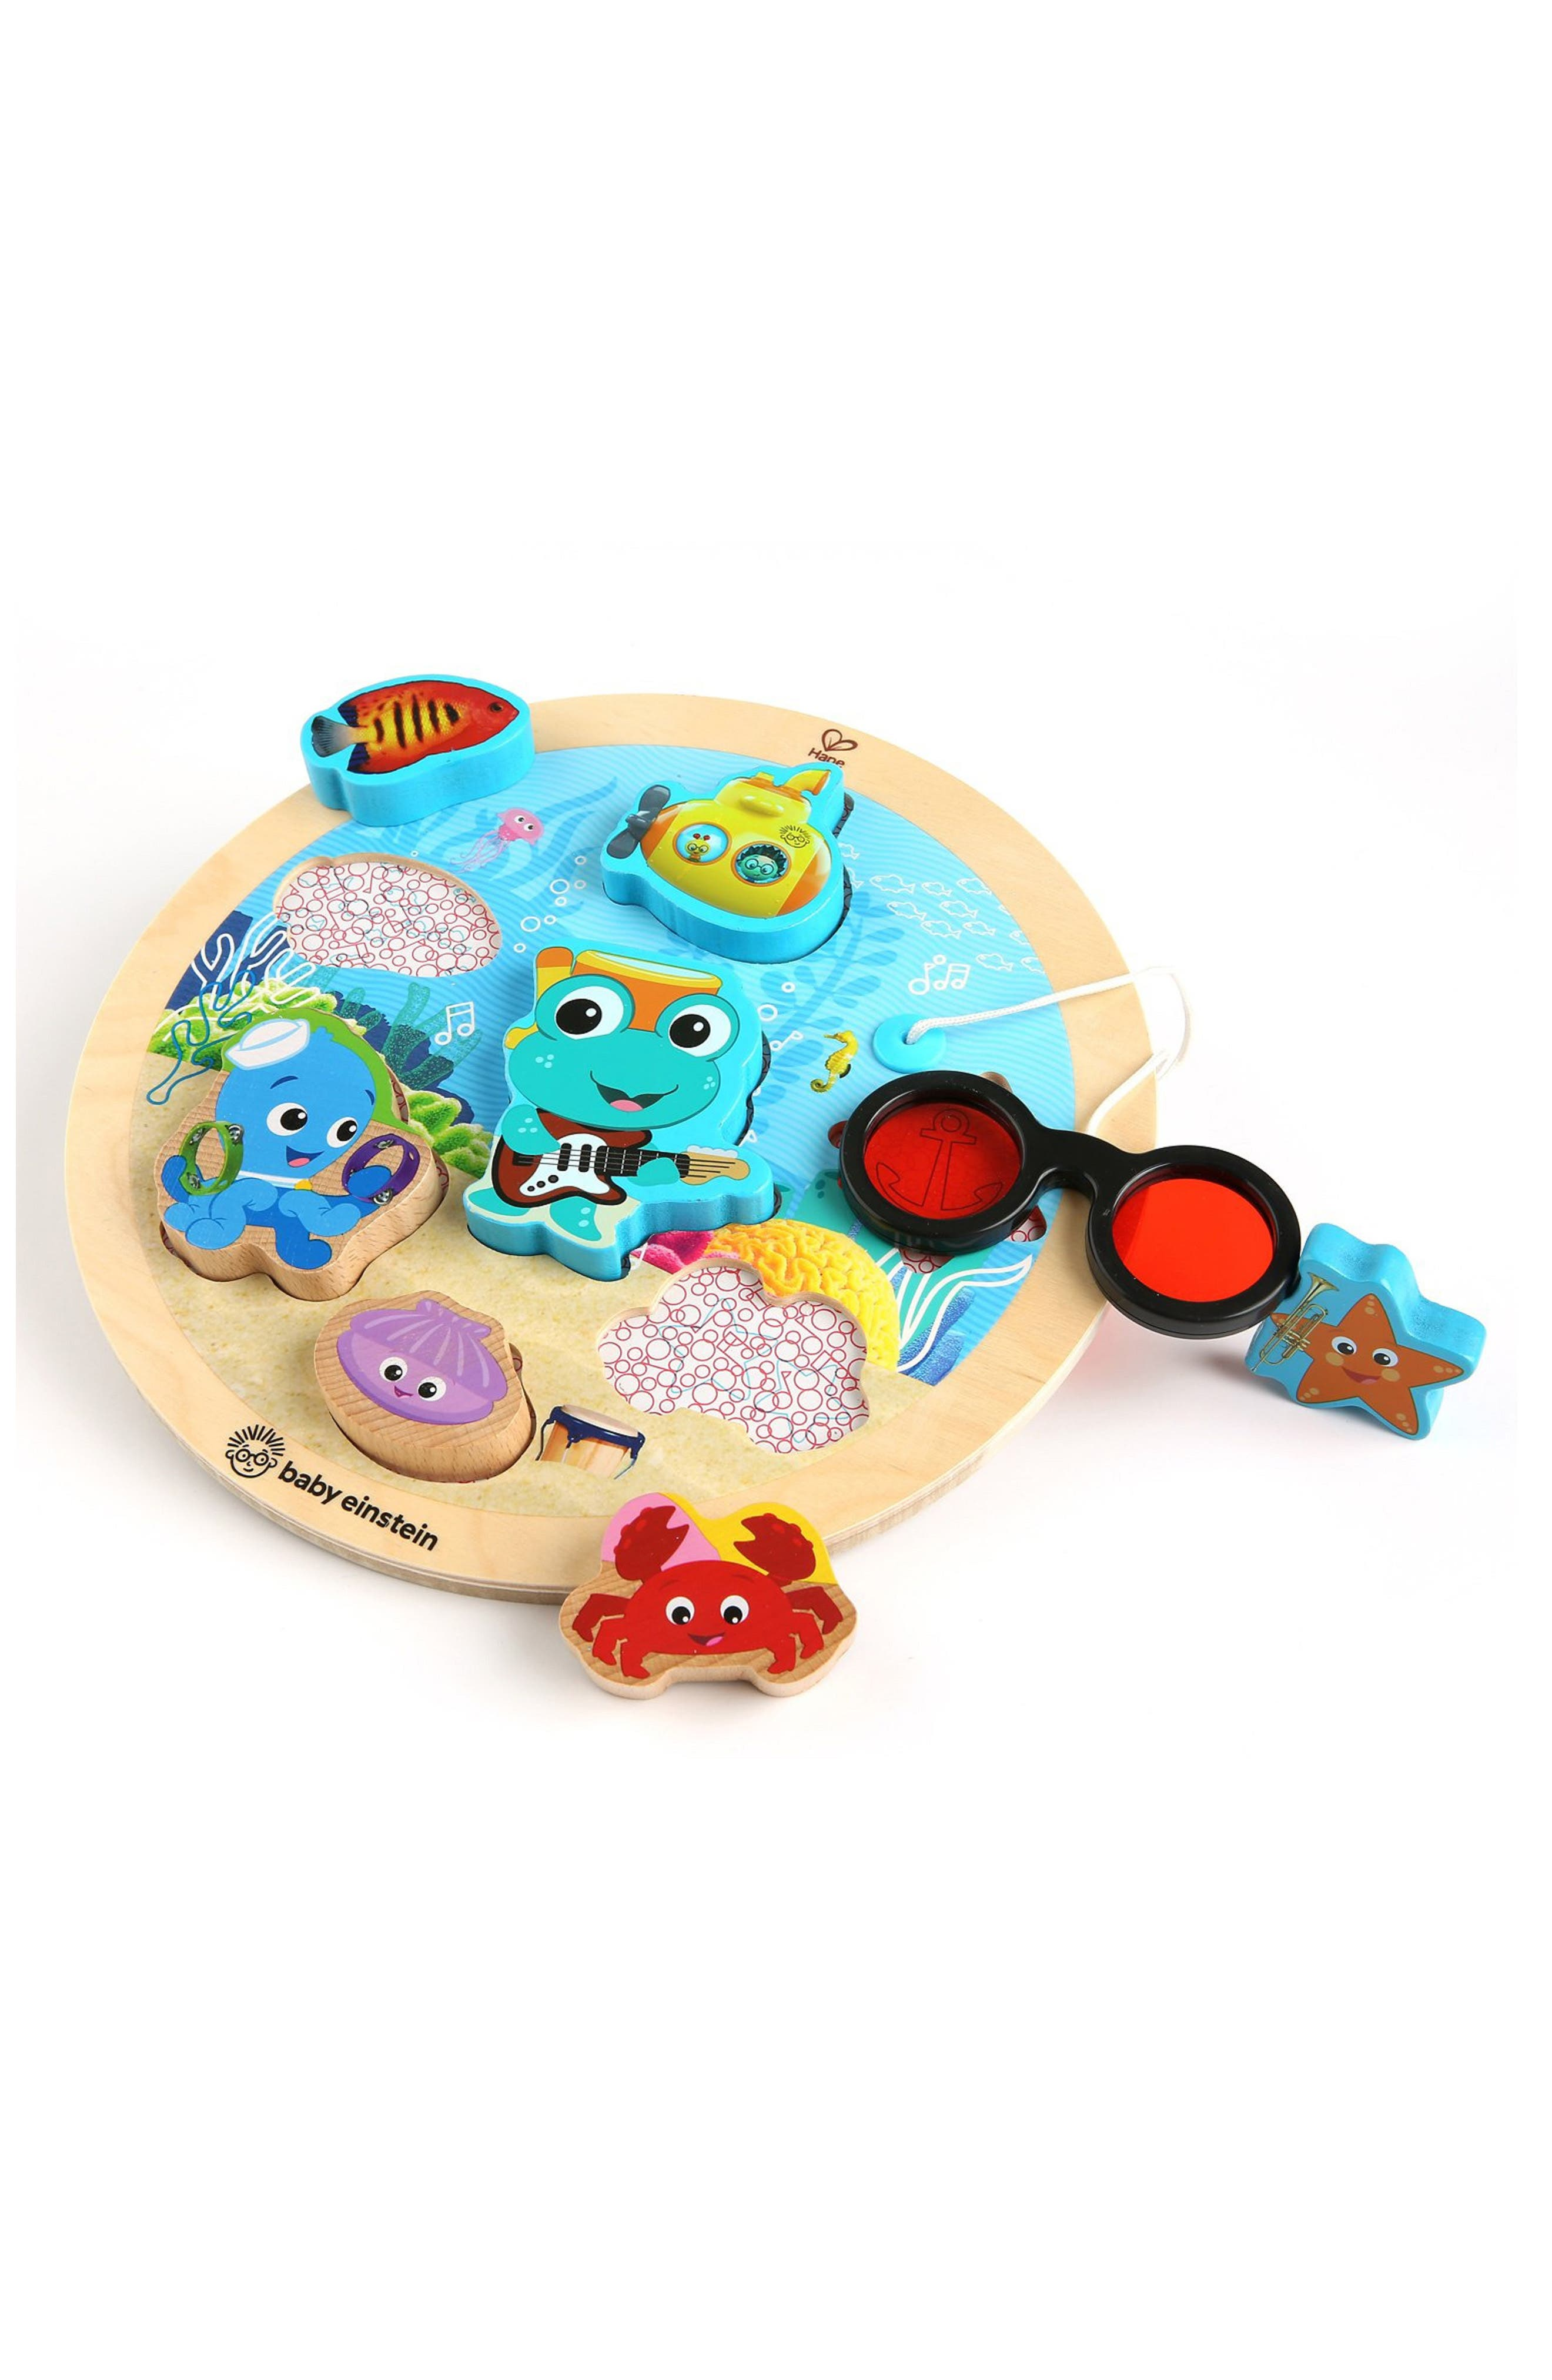 Toddler Baby Einstein Hape Submarine Adventure Wooden Puzzle With Color Reveal Glasses